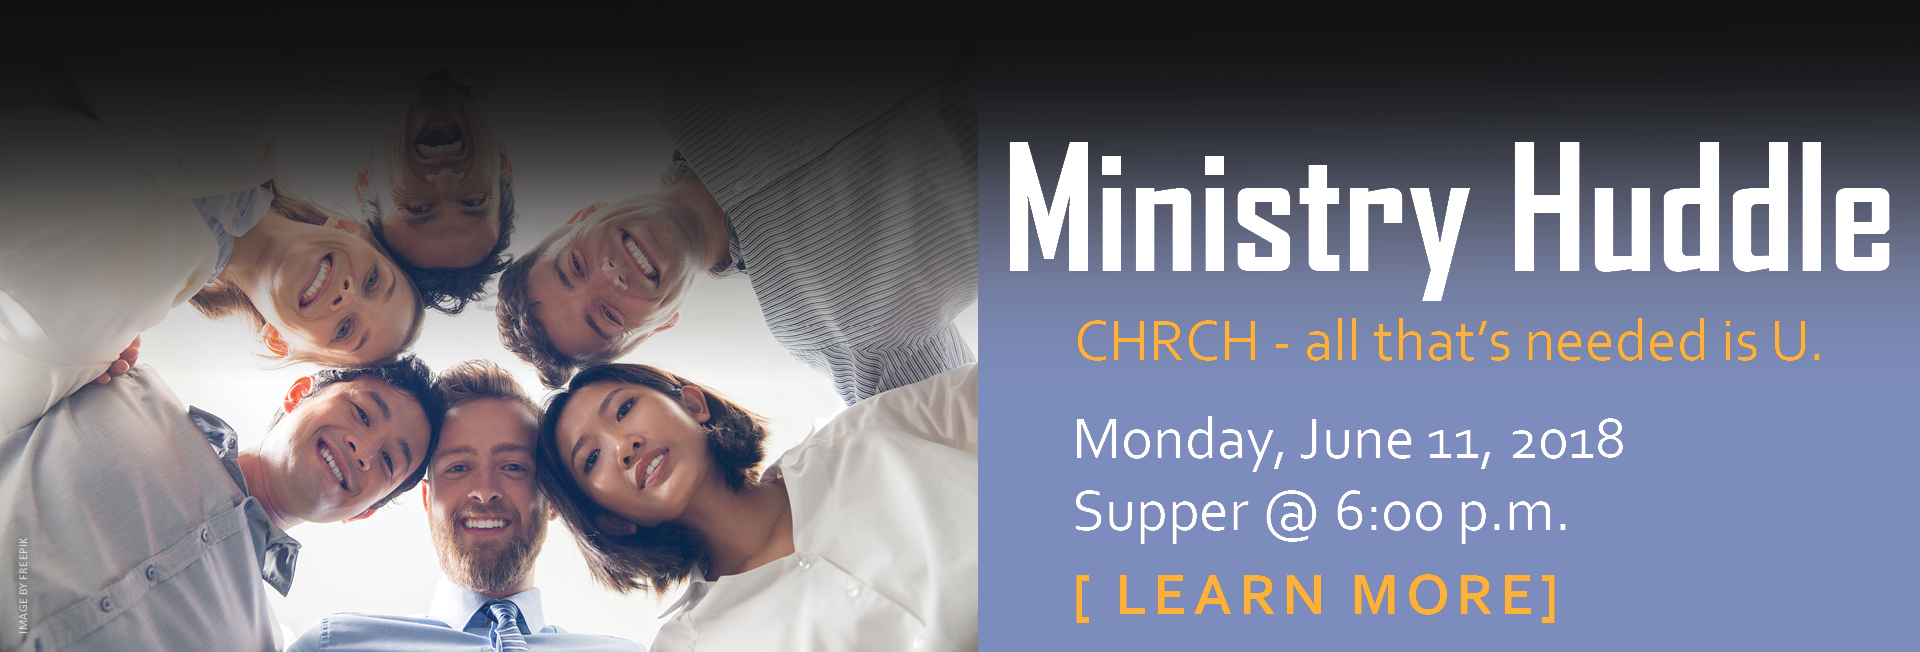 Ministry Huddle - Monday June 11 @ 6-8pm